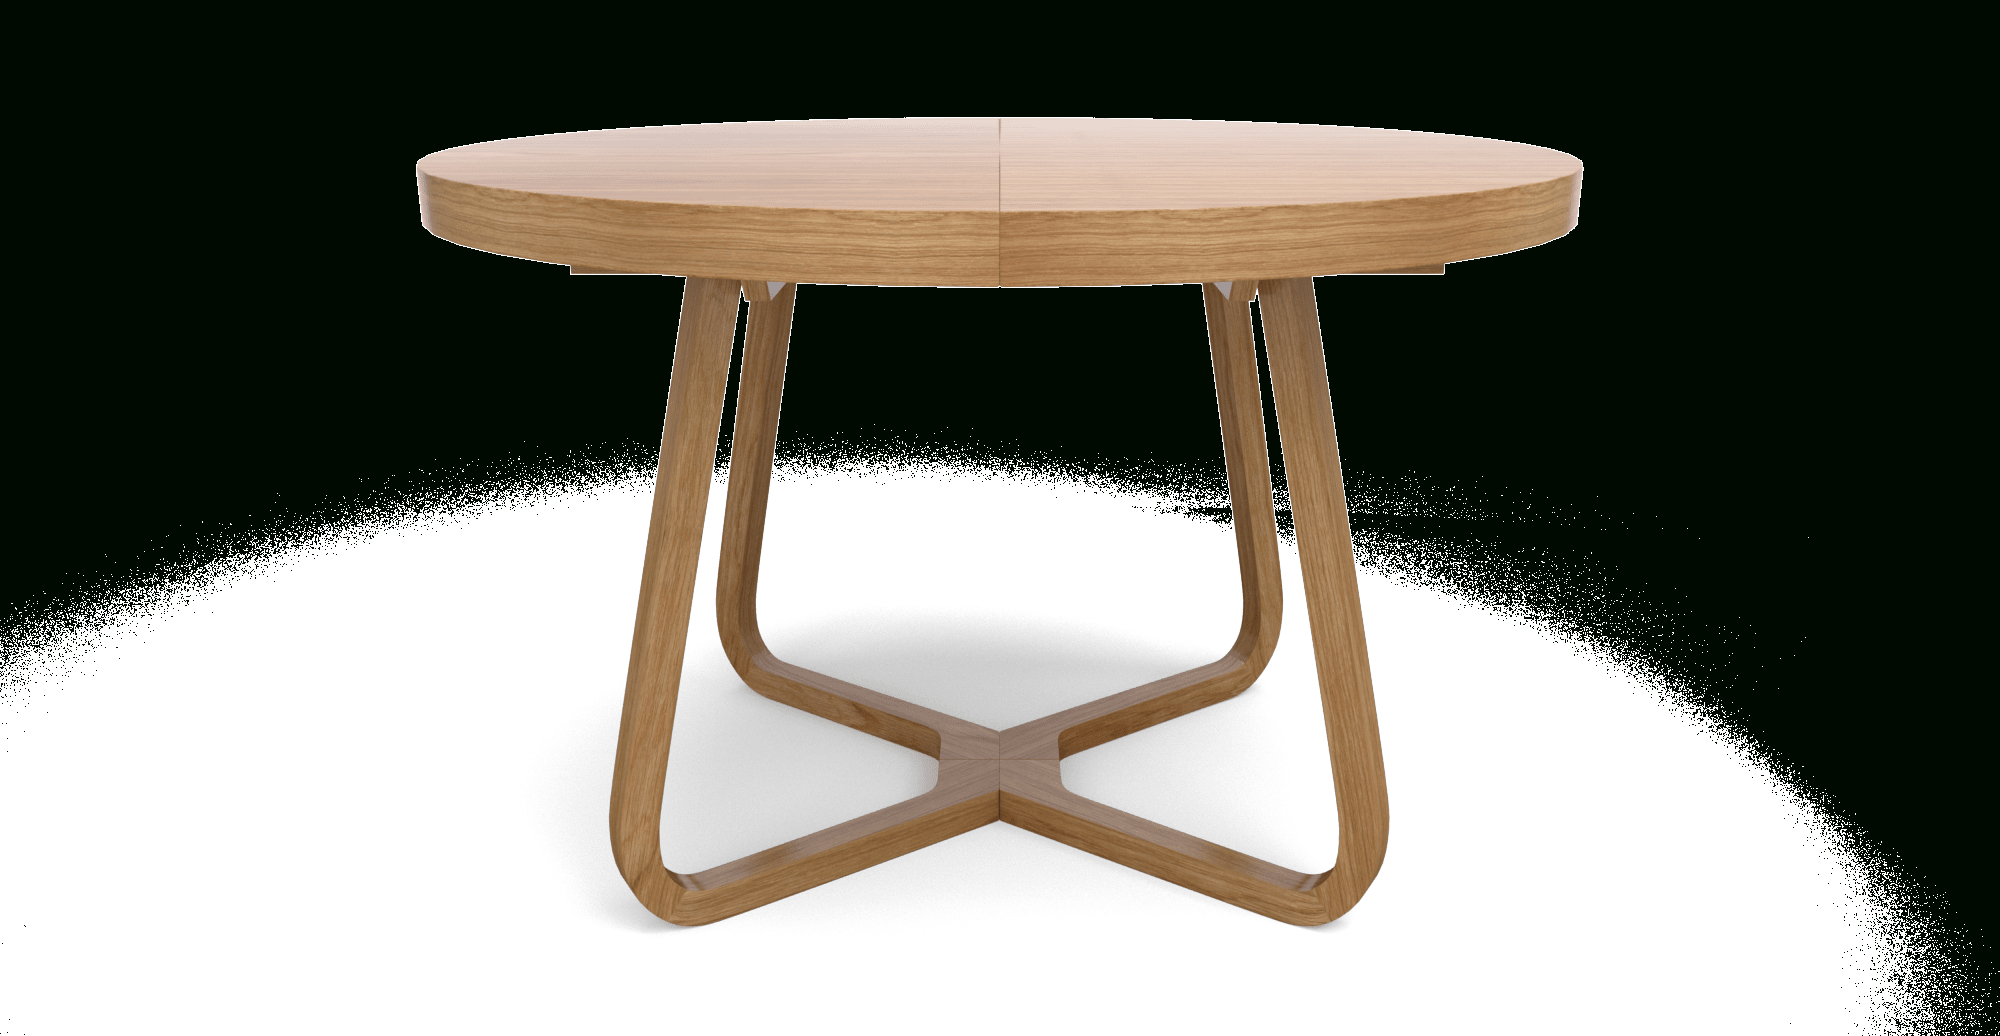 Preferred 8 Seater Wood Contemporary Dining Tables With Extension Leaf Throughout Romulus Extendable Dining Table 120/160Cm (View 20 of 25)